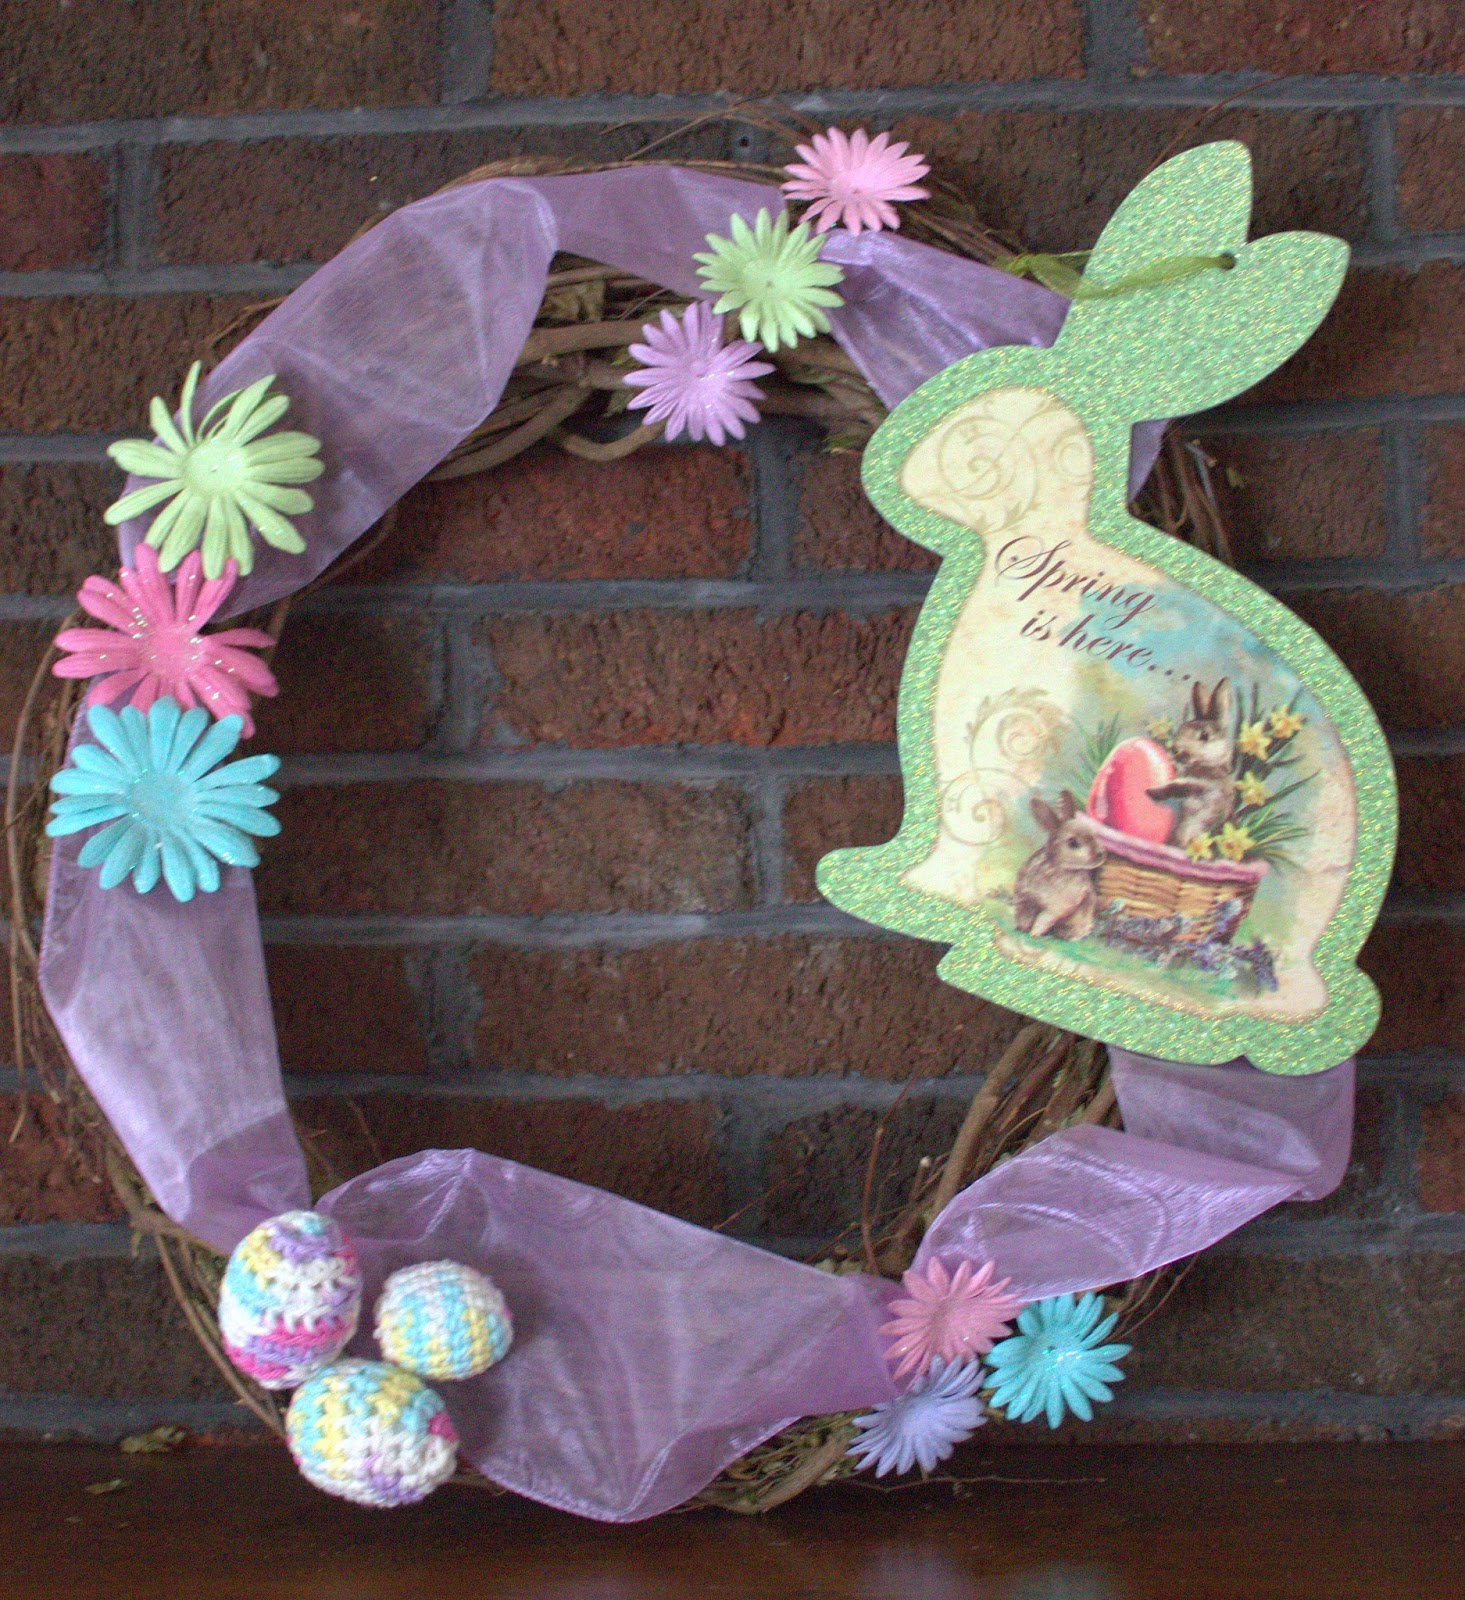 Decorating with Crochet Easter Eggs #crochet #easter #crafts #spring